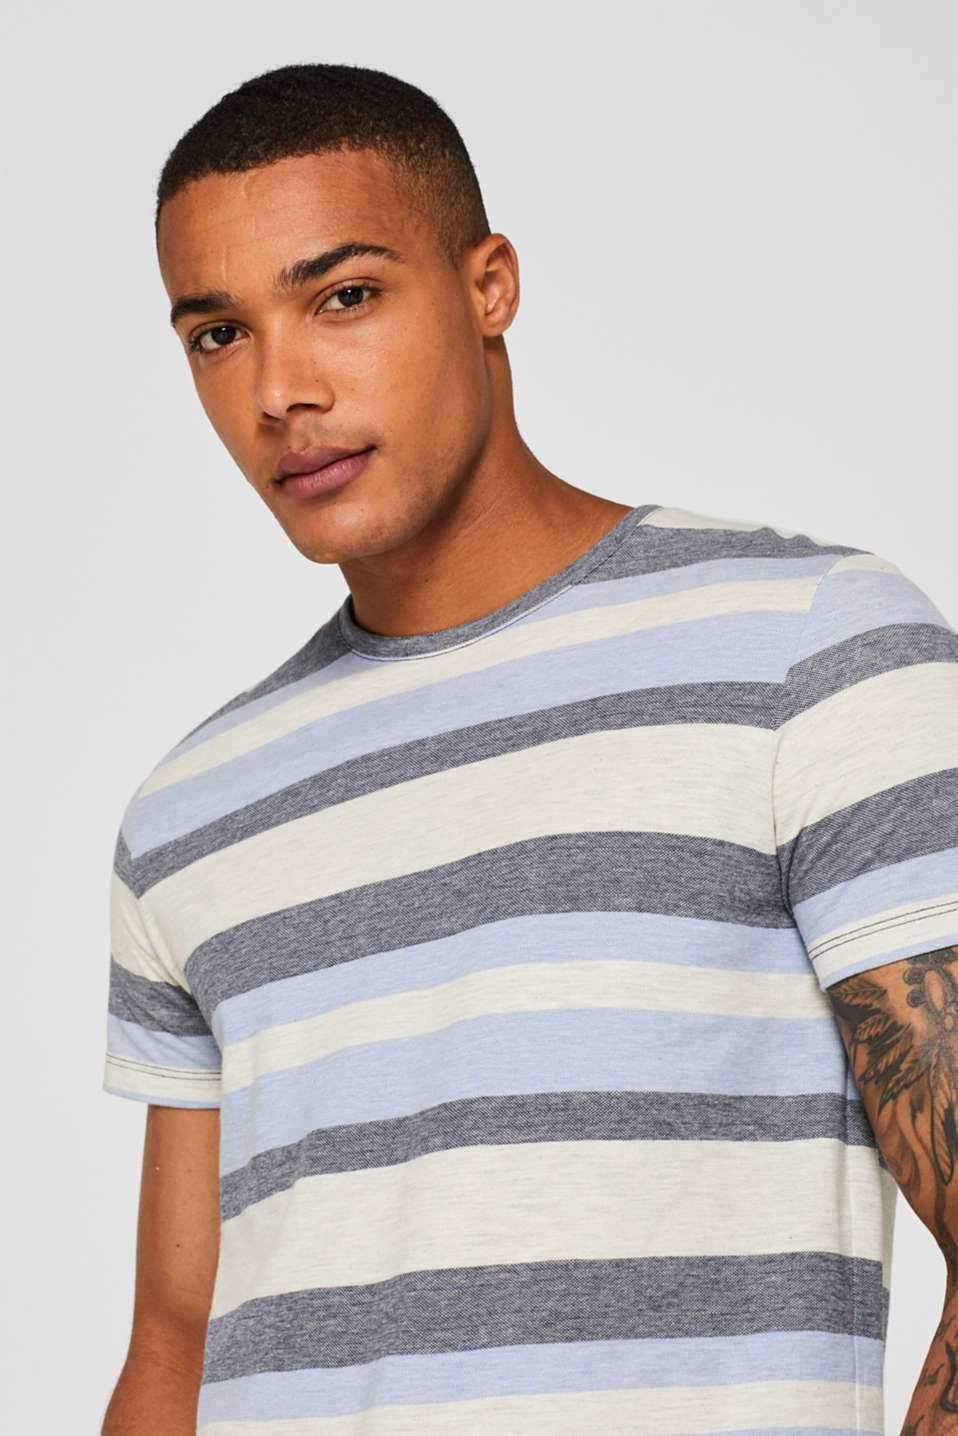 Piqué T-shirt with stripes, NAVY, detail image number 1